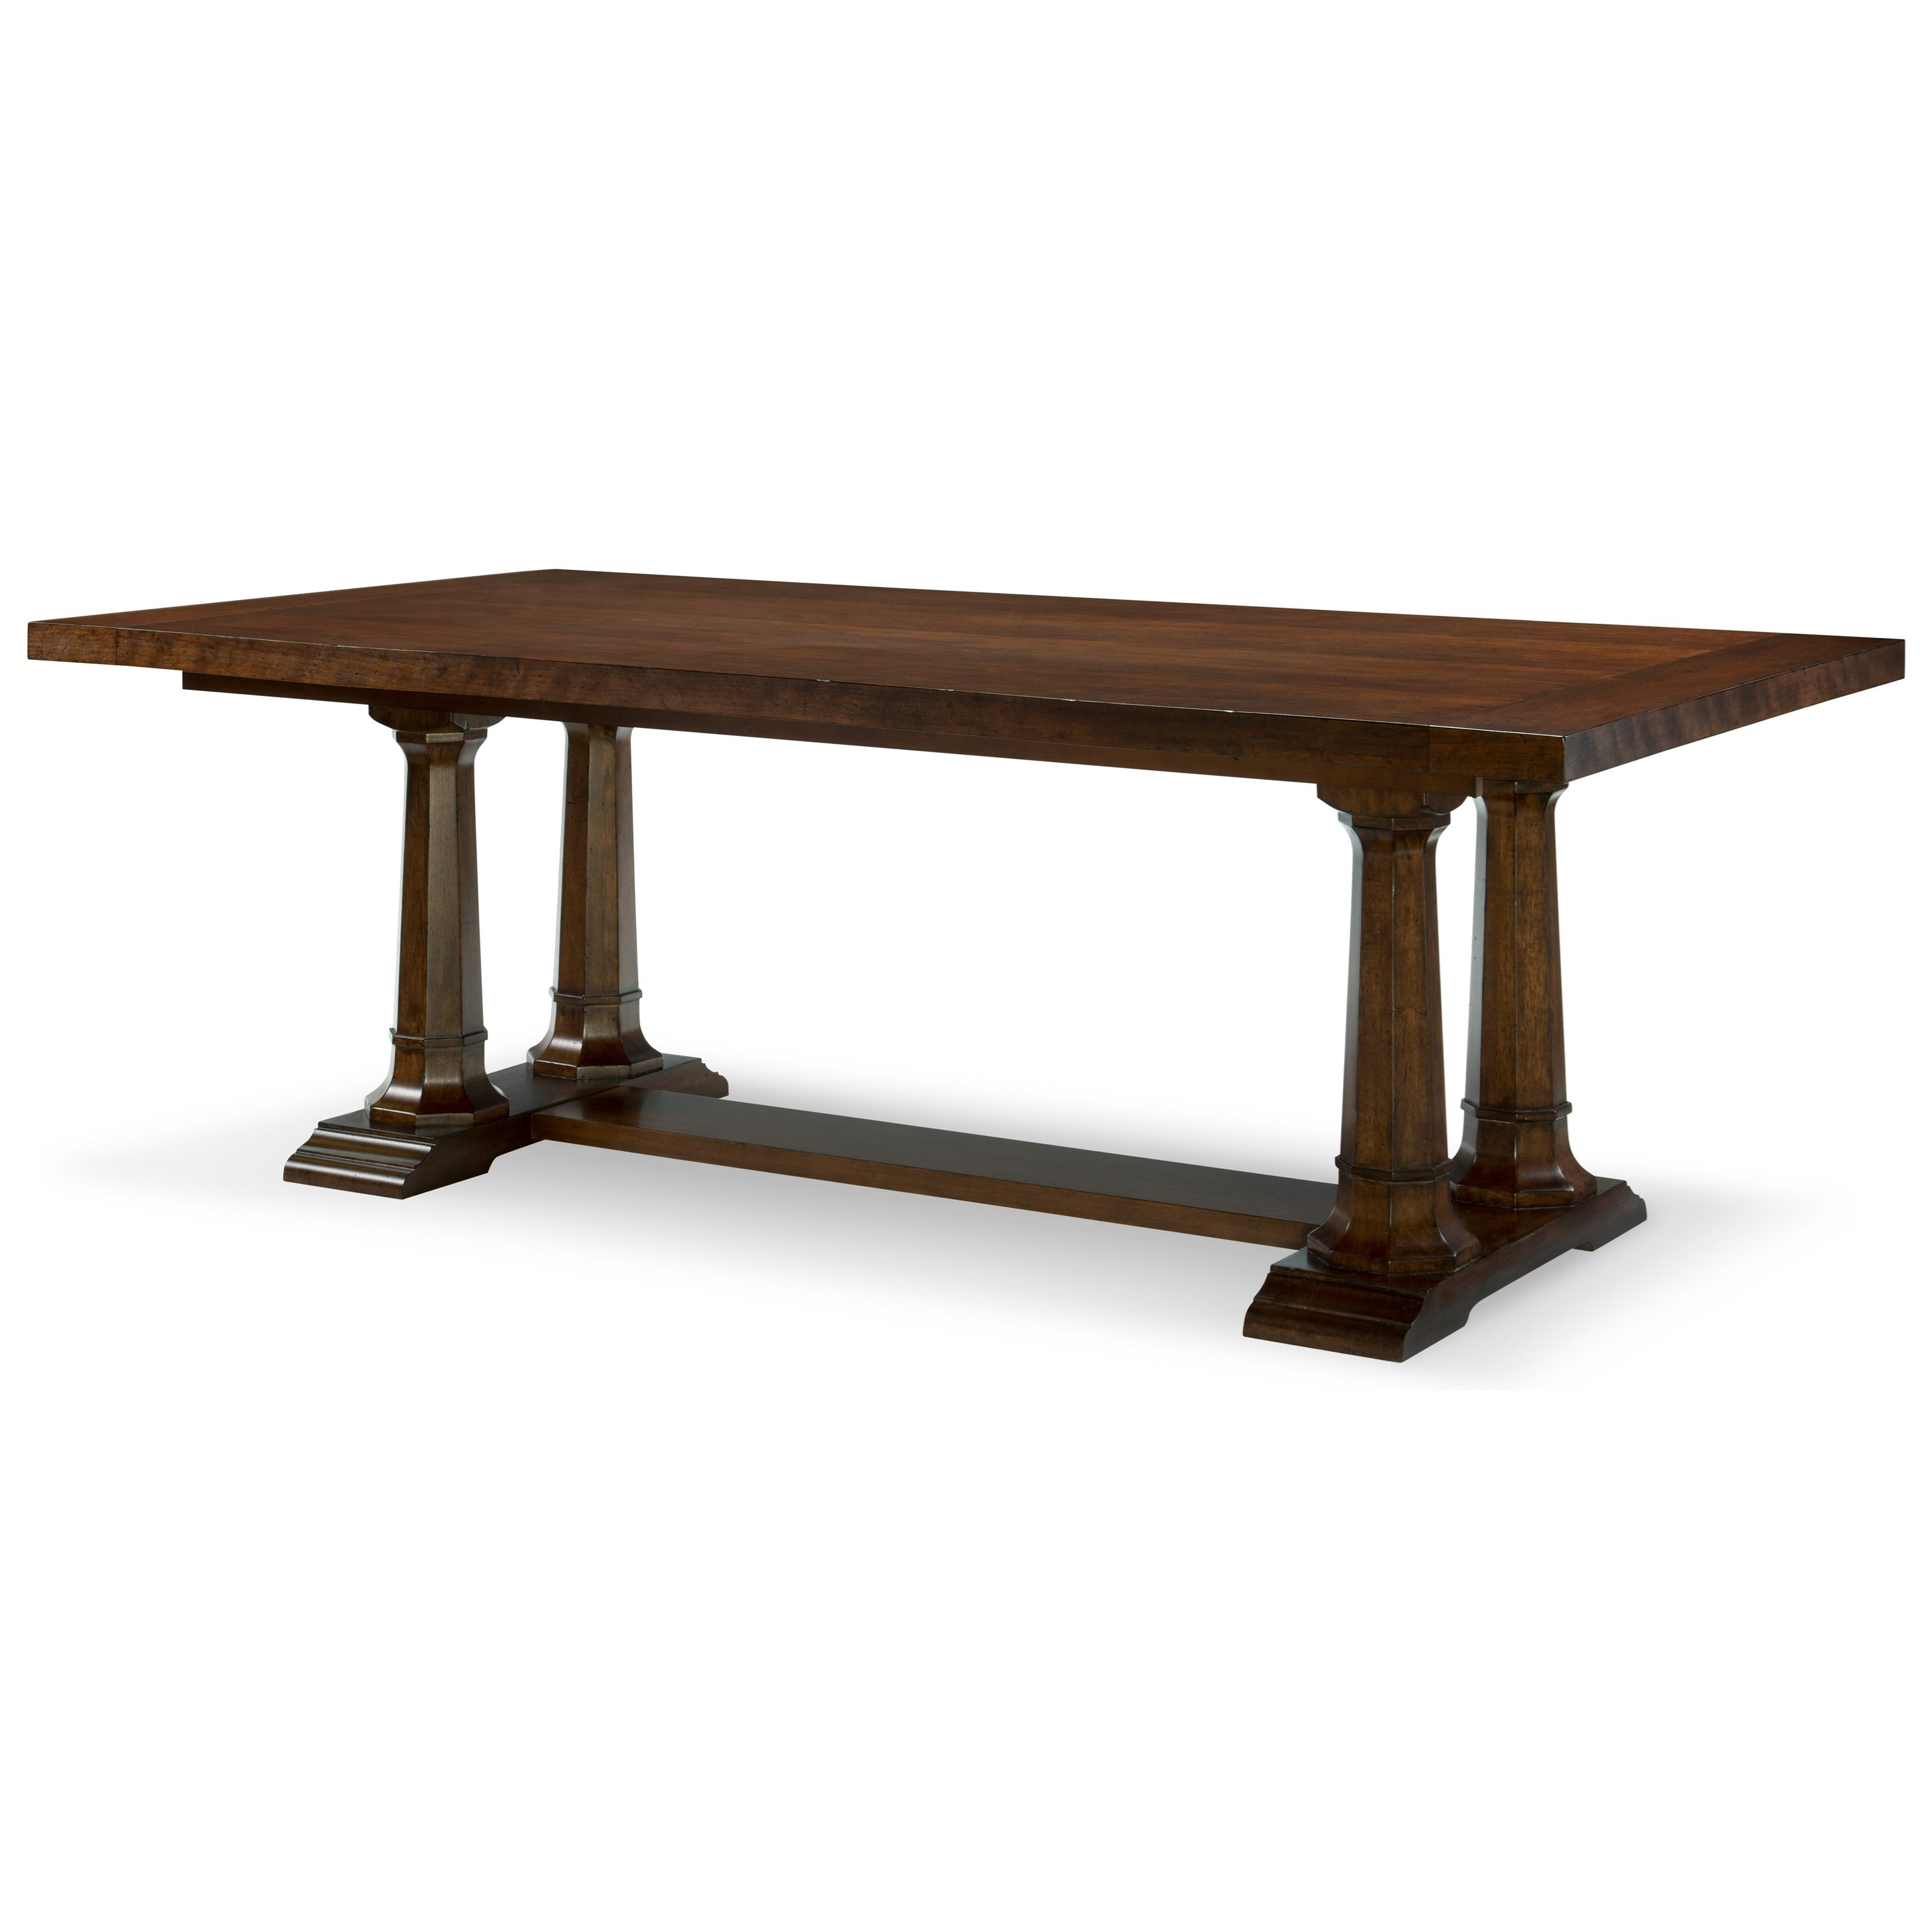 Rachael Ray Home by Legacy Classic Upstate Trestle Table - Item Number: 6040-622K